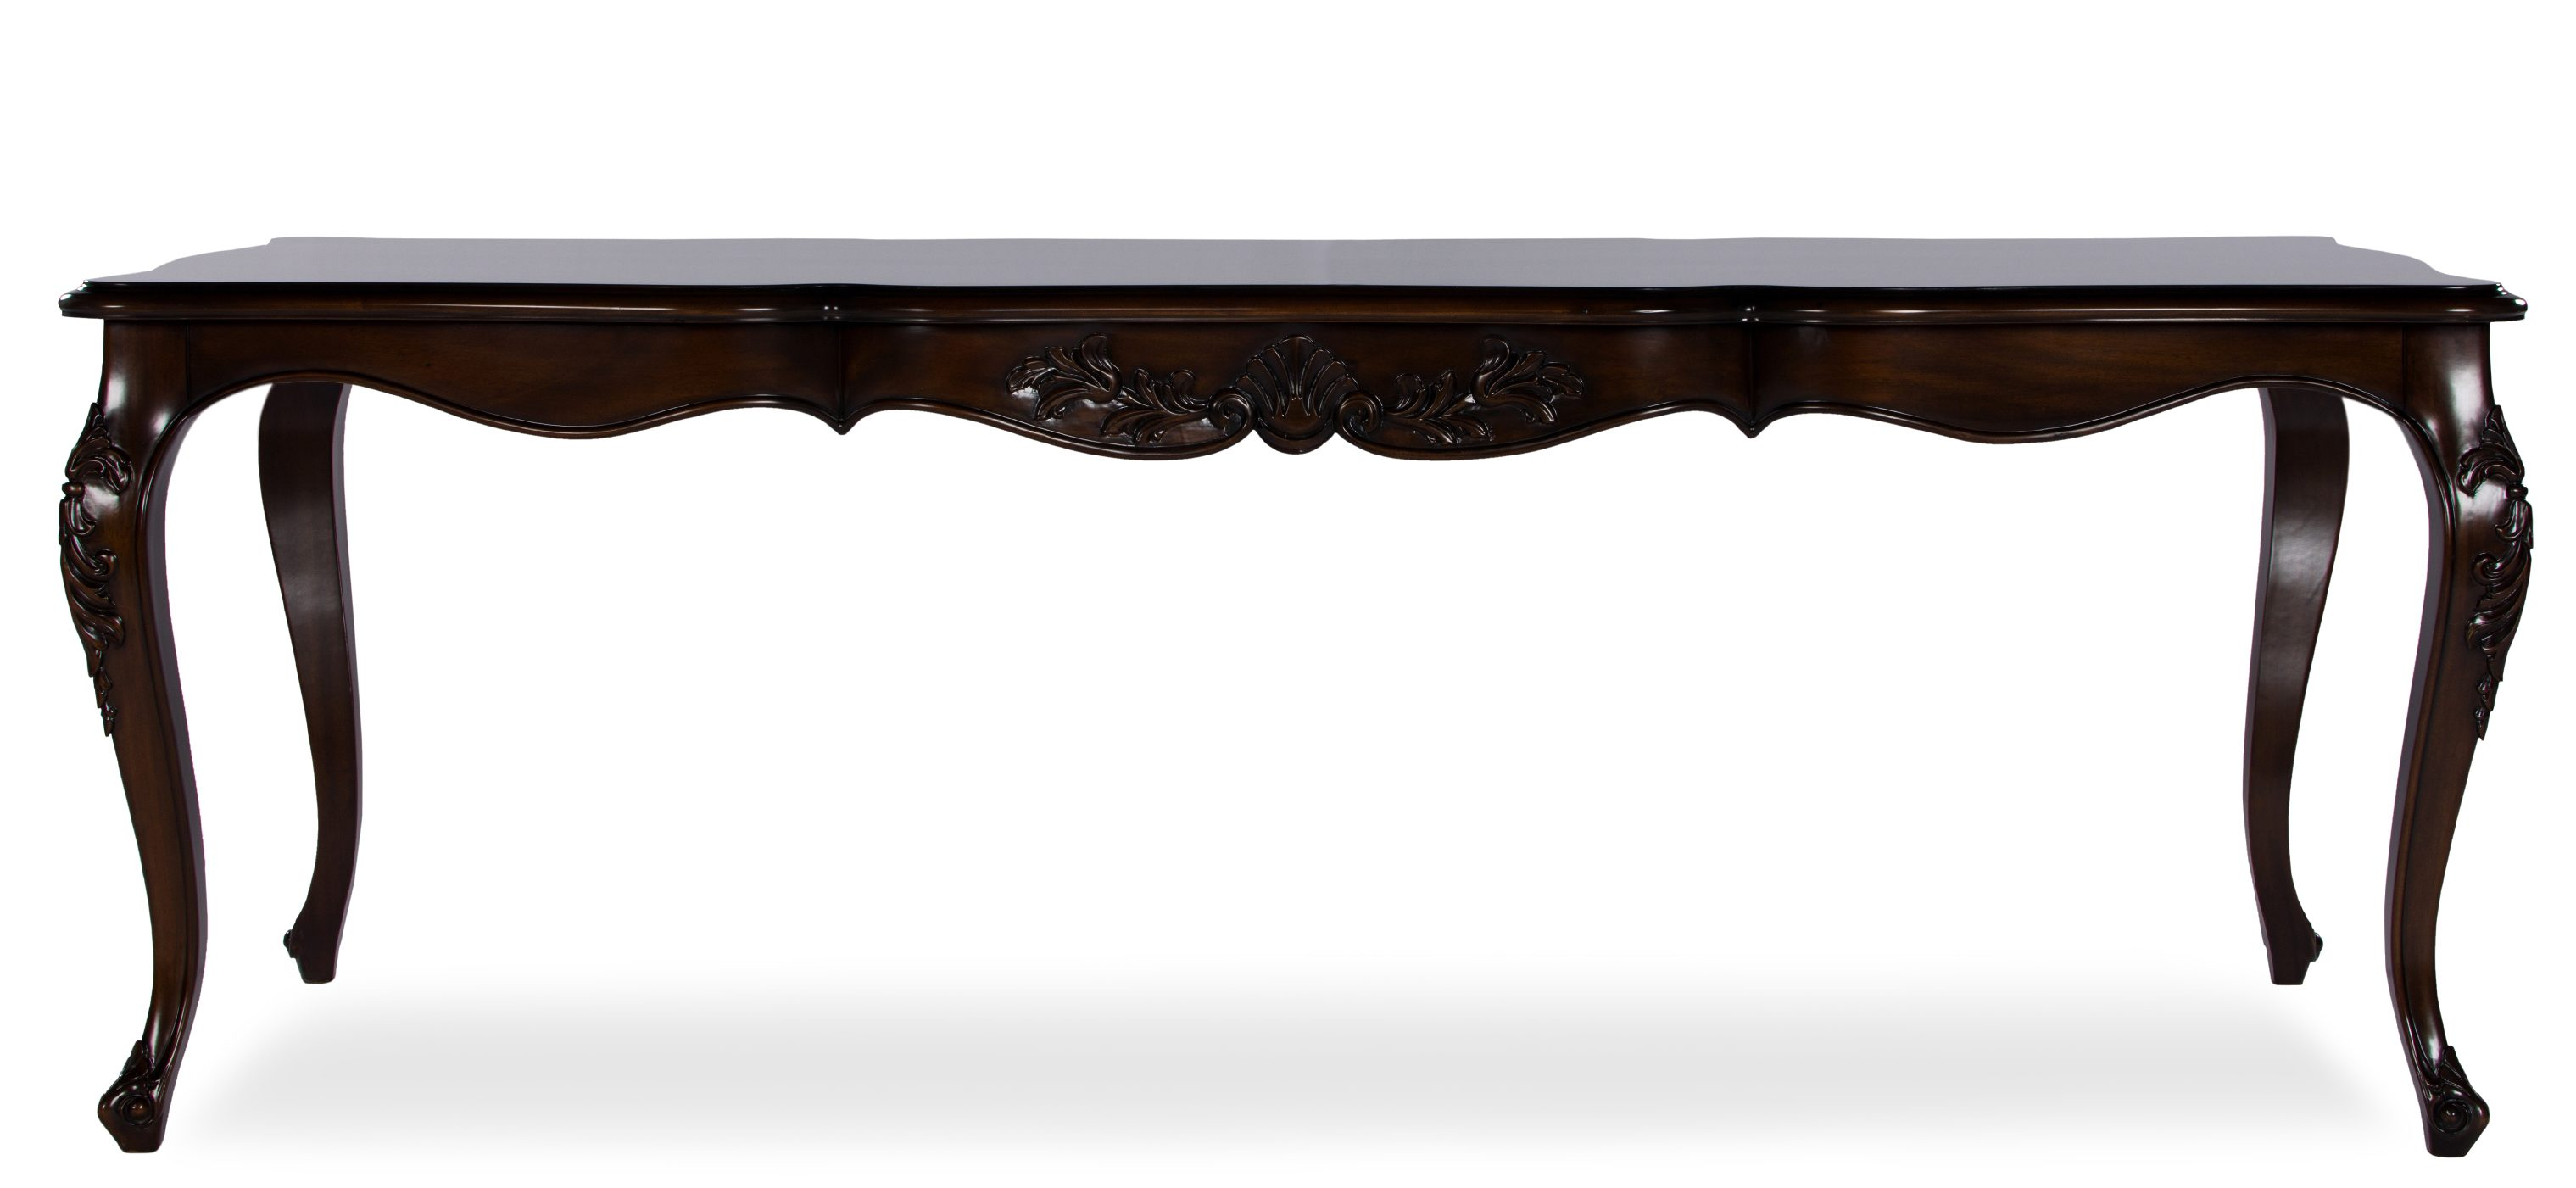 classic type wooden table with curved legs